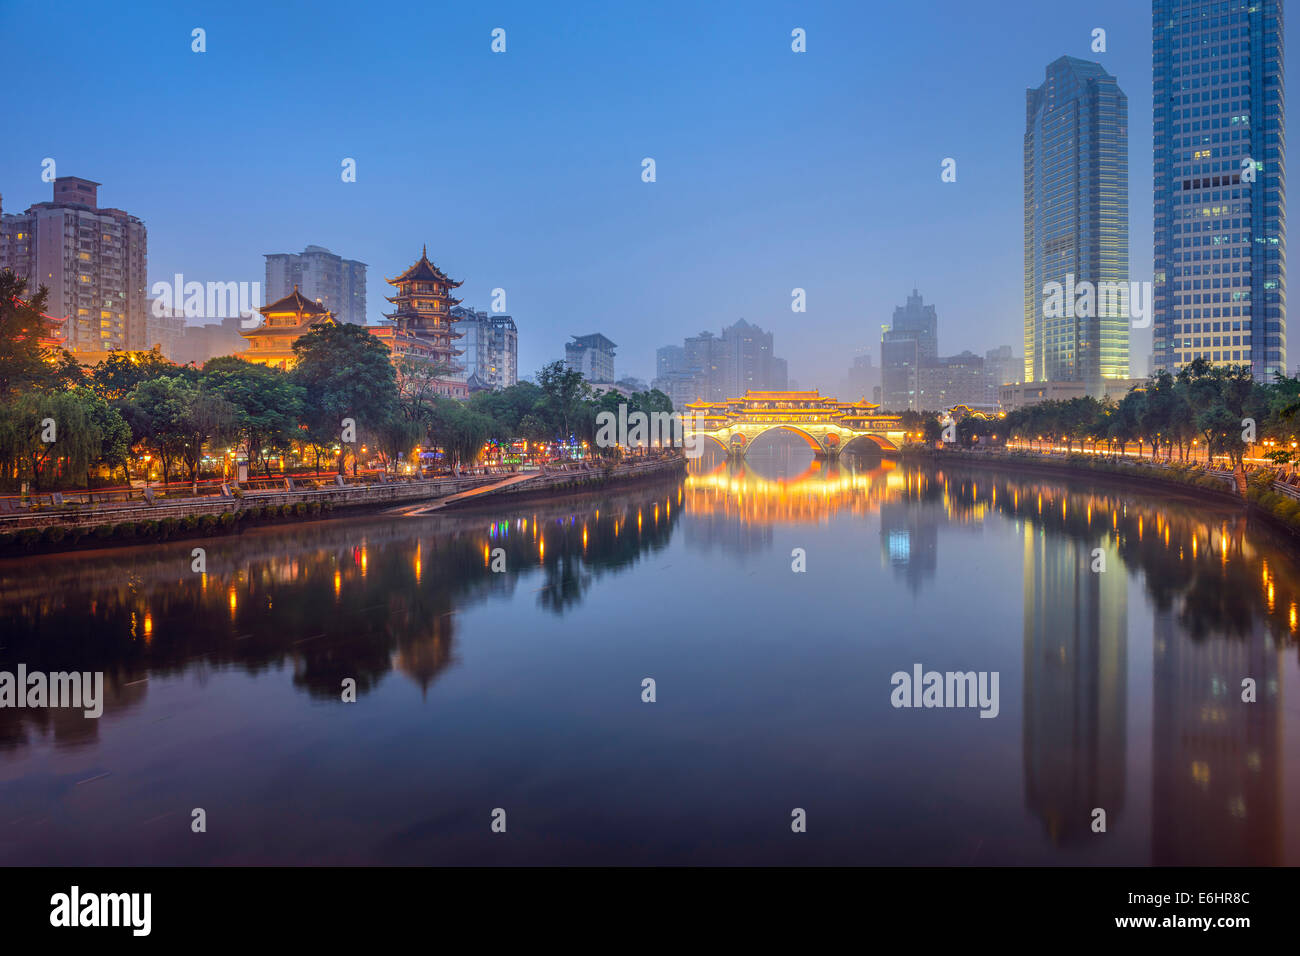 Chengdu, Sichuan, China at Anshun Bridge. - Stock Image